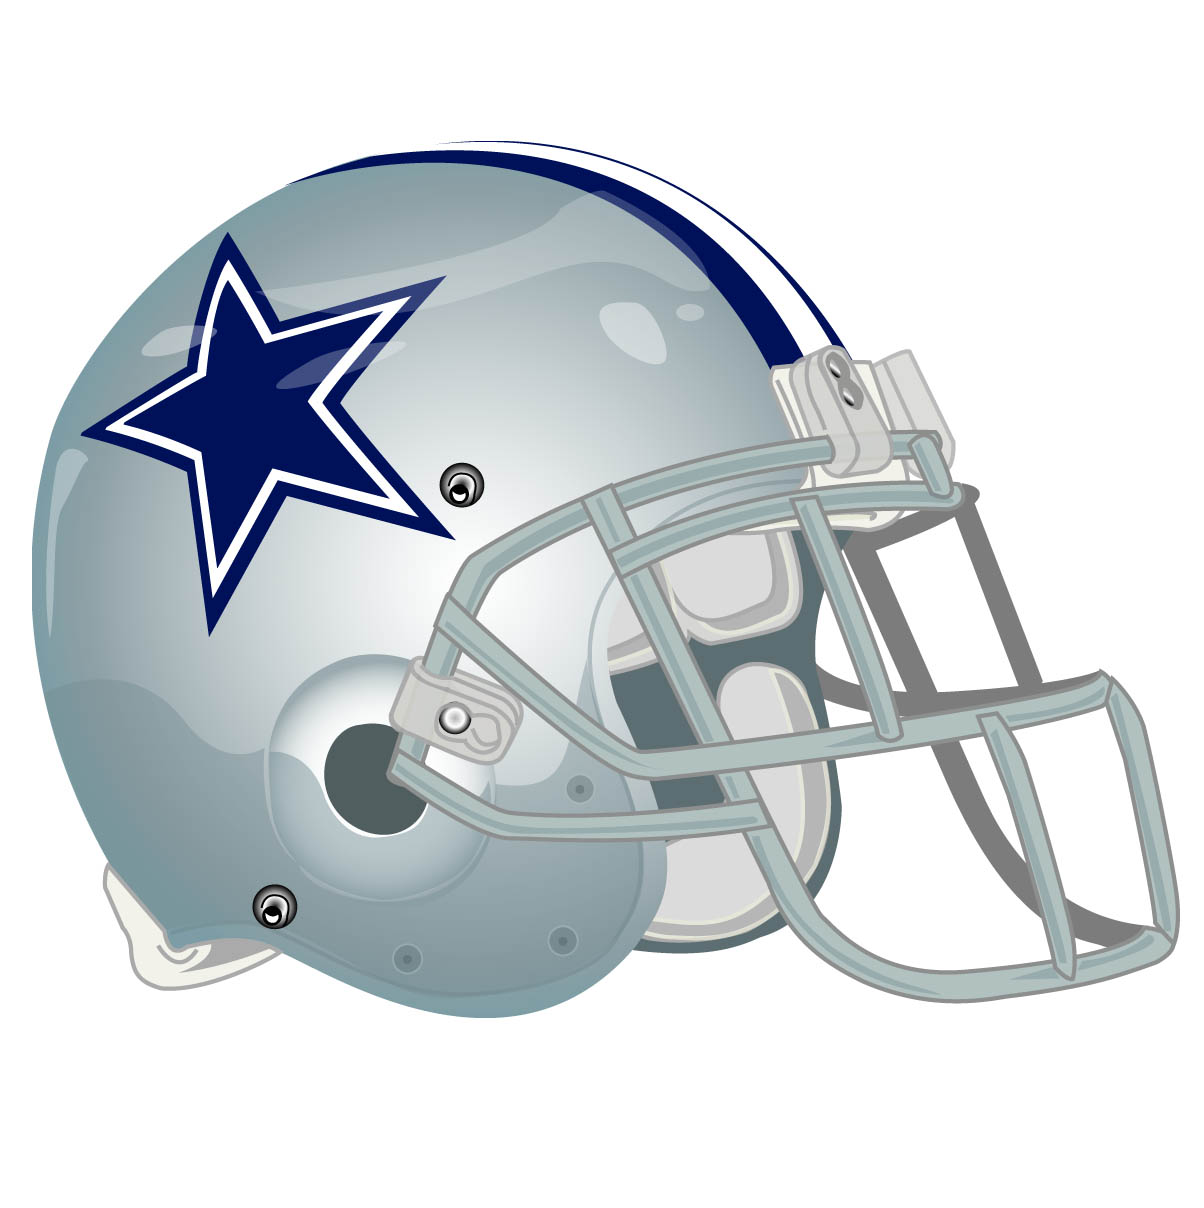 Image - Dallas Cowboys helmet.jpg - Dragons Of Atlantis Wiki